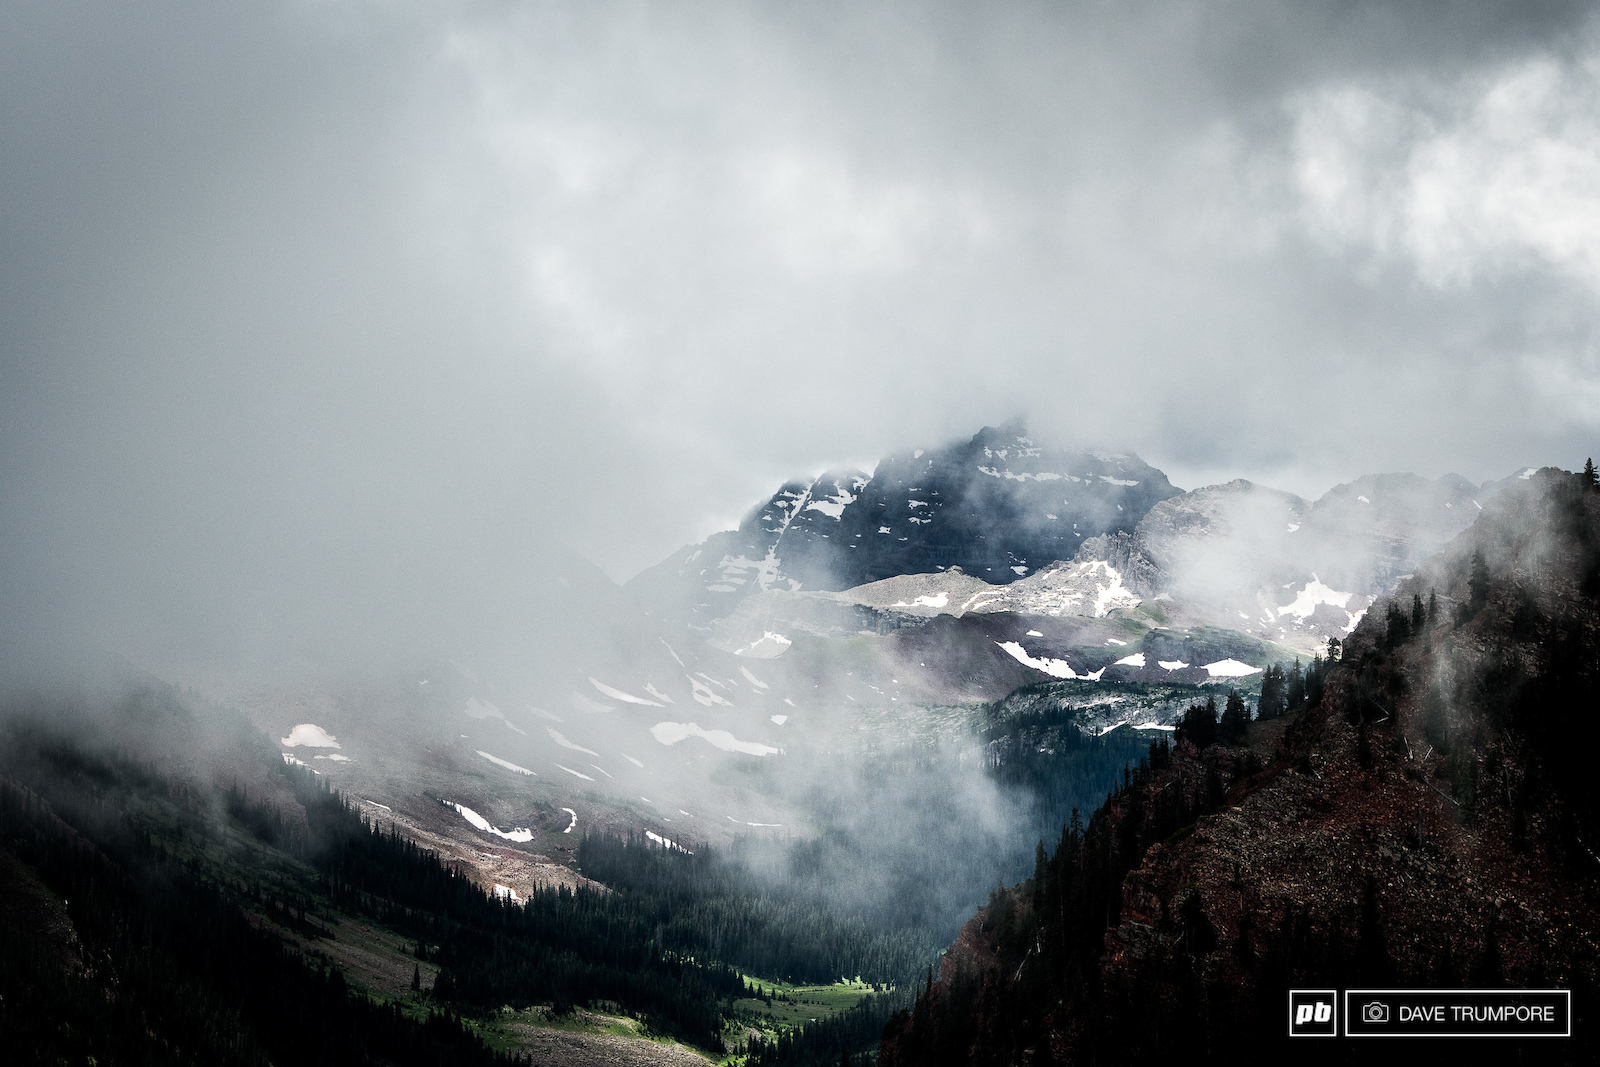 The iconic Maroon Bells peak through the cloud cover at the top of Stage 4.